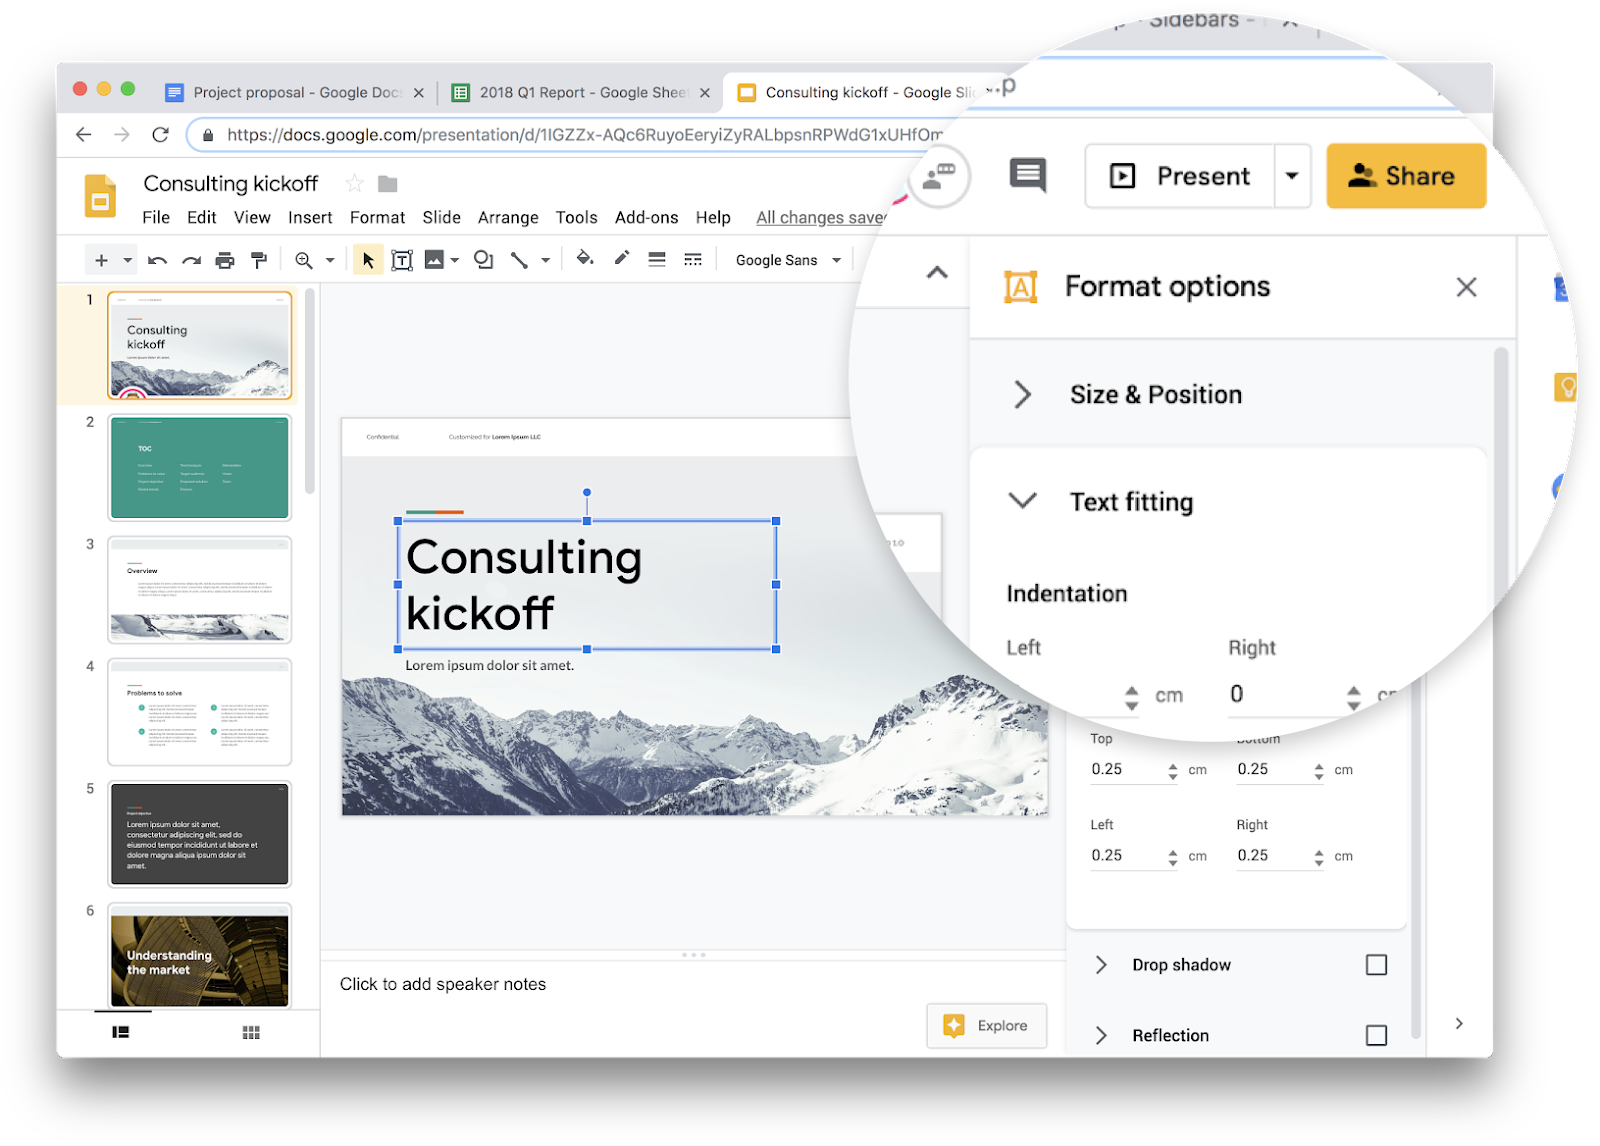 Google to update G Suite apps with Material Design theme